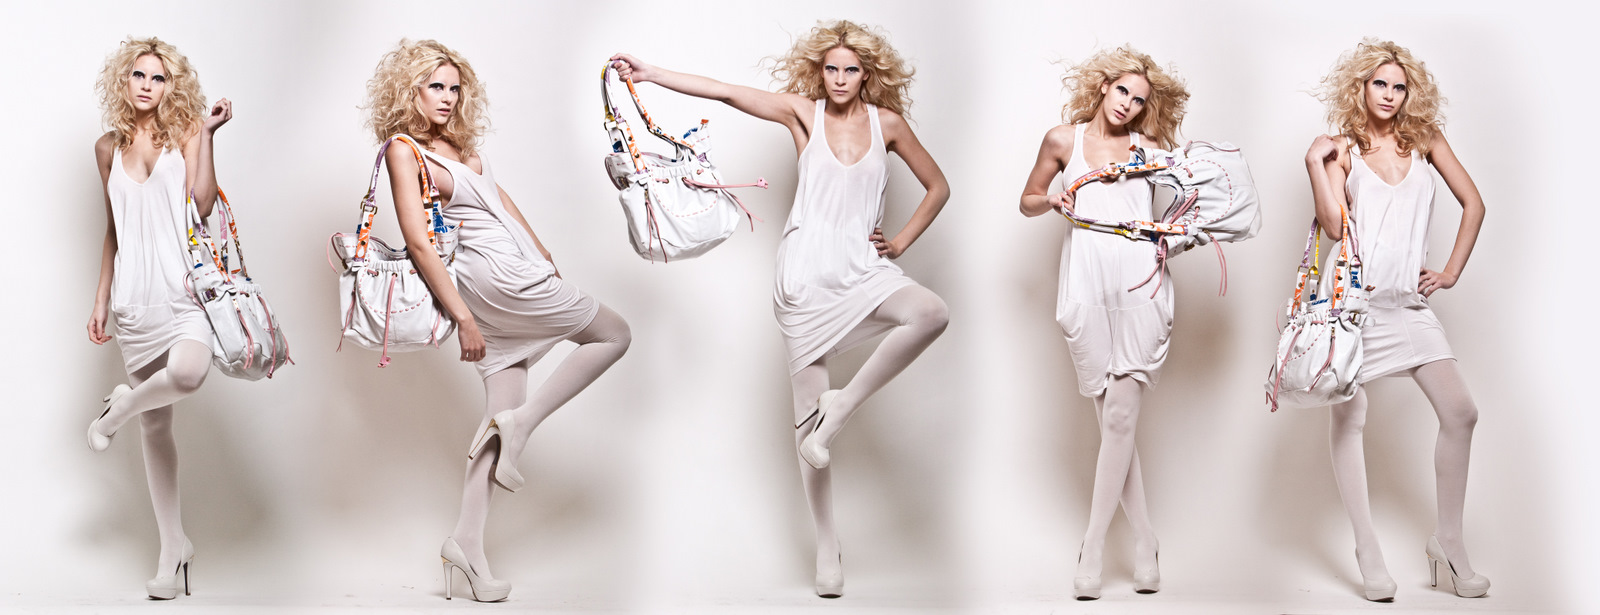 Photograpghy by PETER WORMLEIGHTON Styling by REEME IDRIS